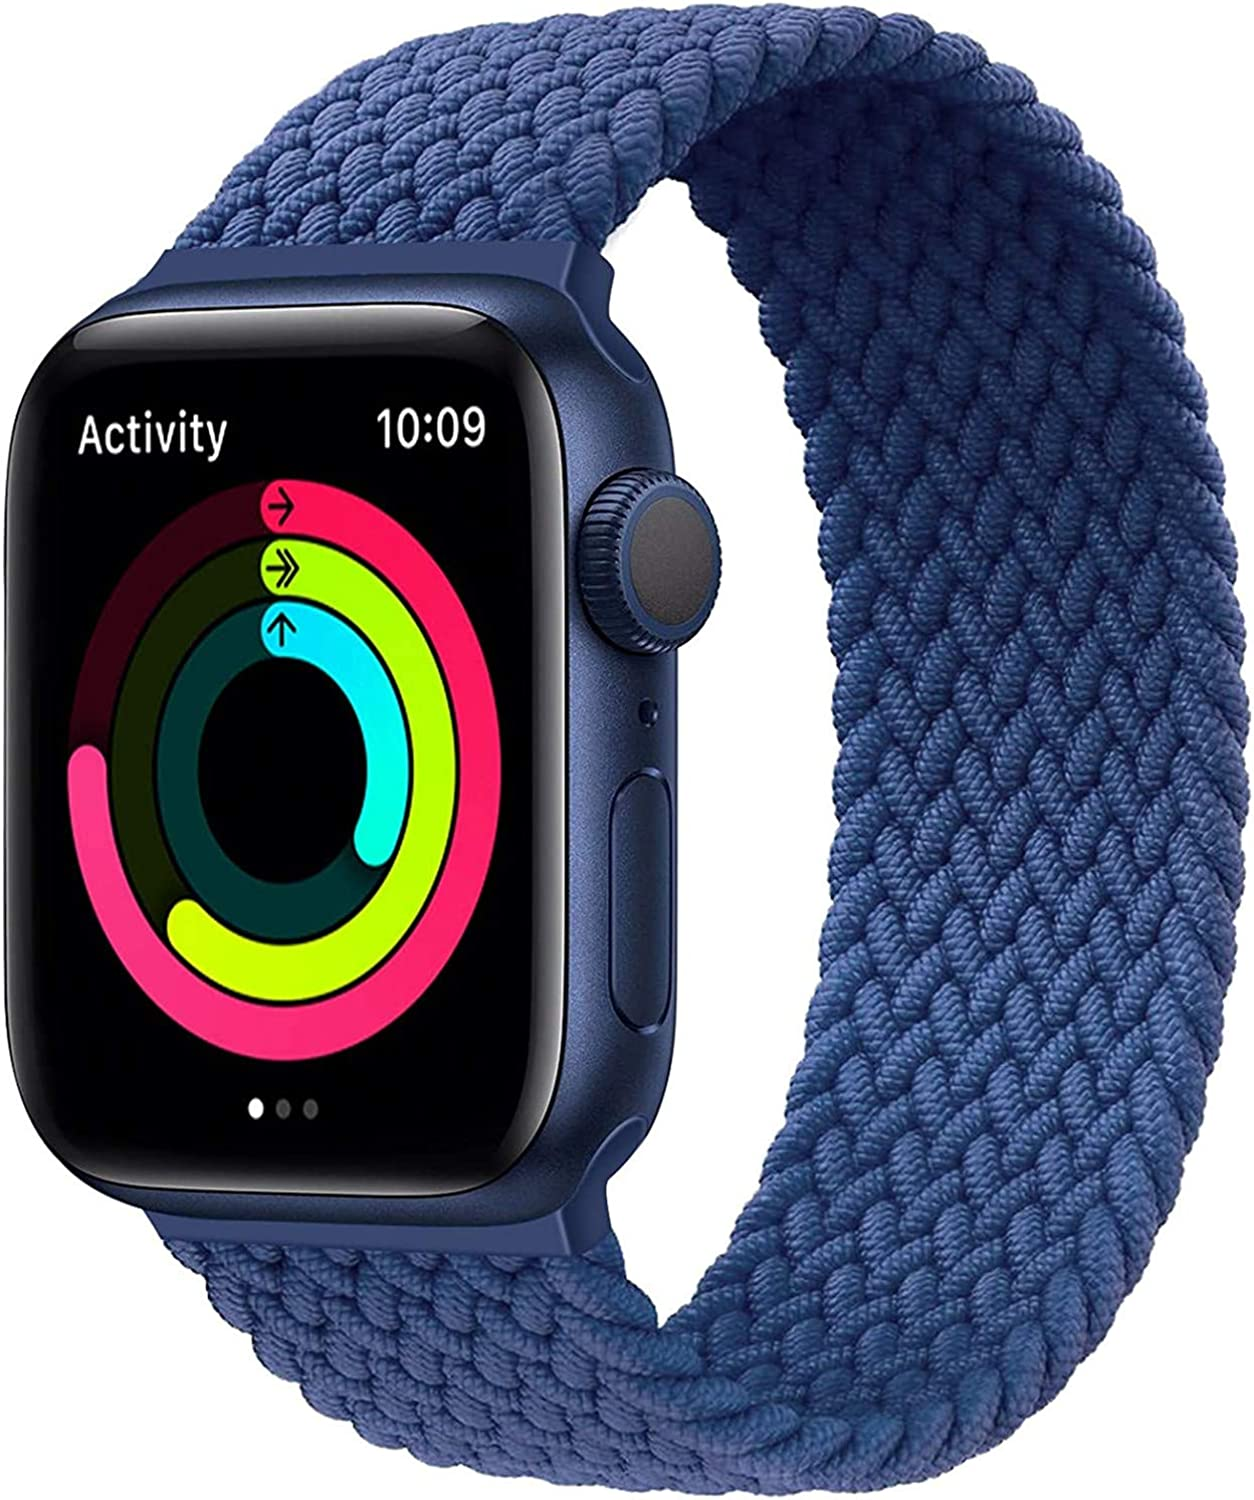 H&S Stretchy Solo Loop Strap Compatible for Apple Watch Elastics Soft Breathable Stretch Sport Band 38mm 40mm 42mm 44mm for Men Women Girls with Series SE/6/5/4/3/2/1 Bracelet Replacement Wristbands